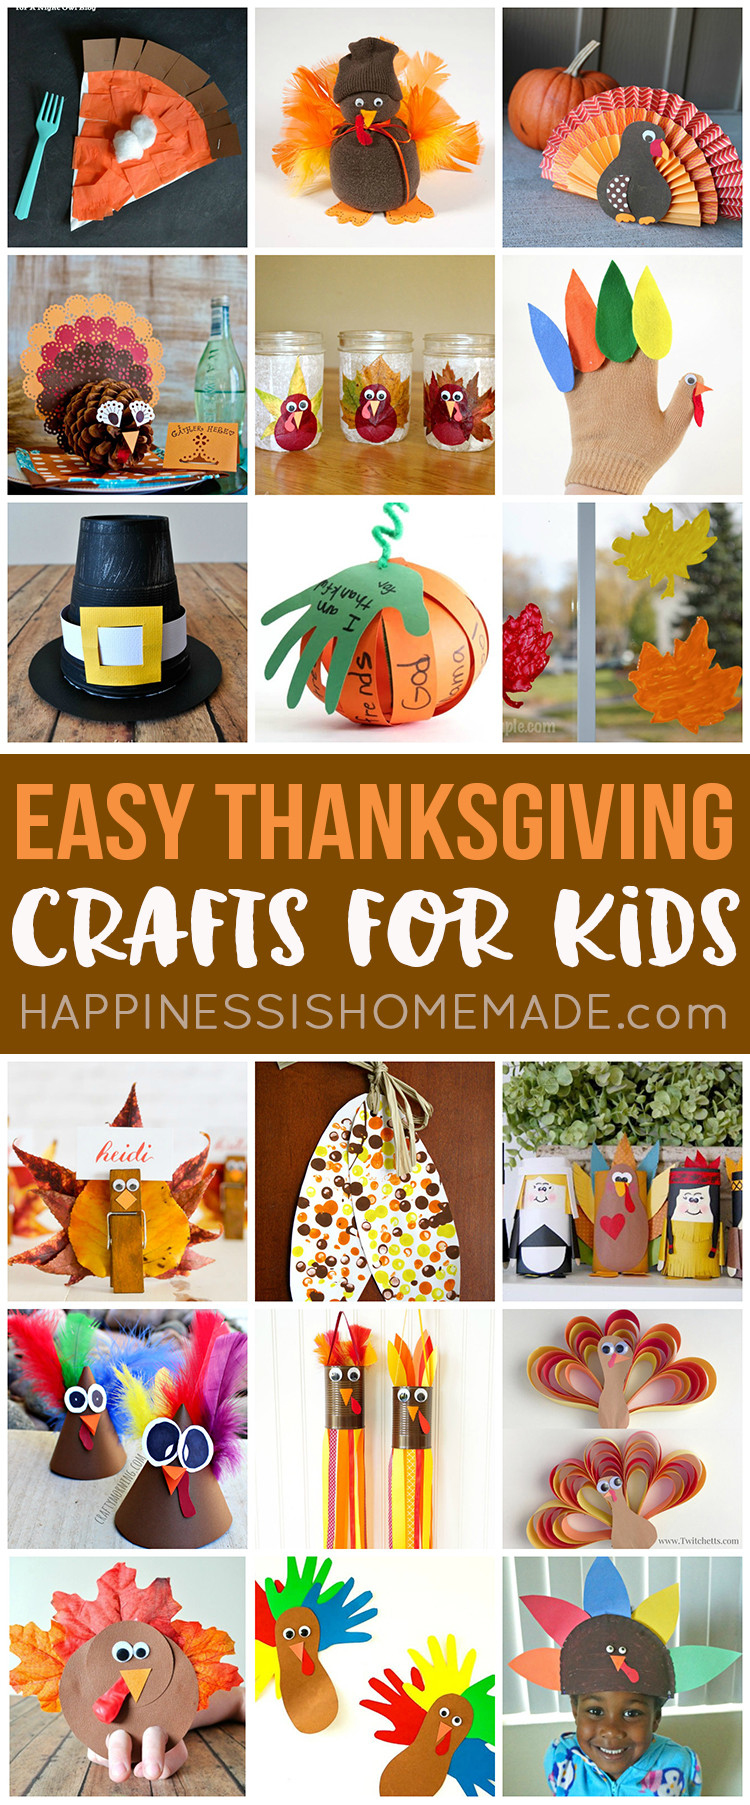 Best ideas about Quick And Easy Crafts For Kids . Save or Pin Easy Thanksgiving Crafts for Kids to Make Happiness is Now.